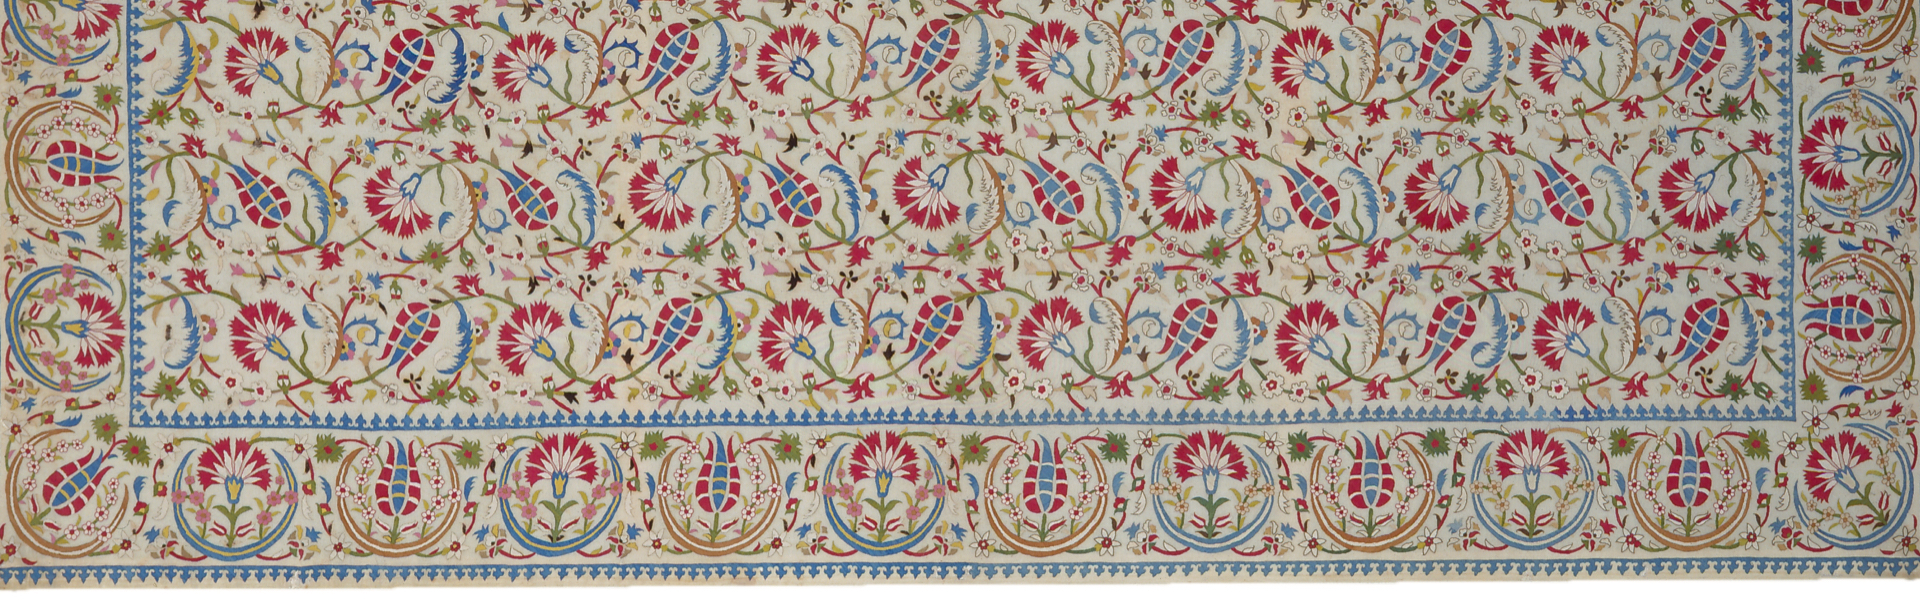 White textile with red and blue